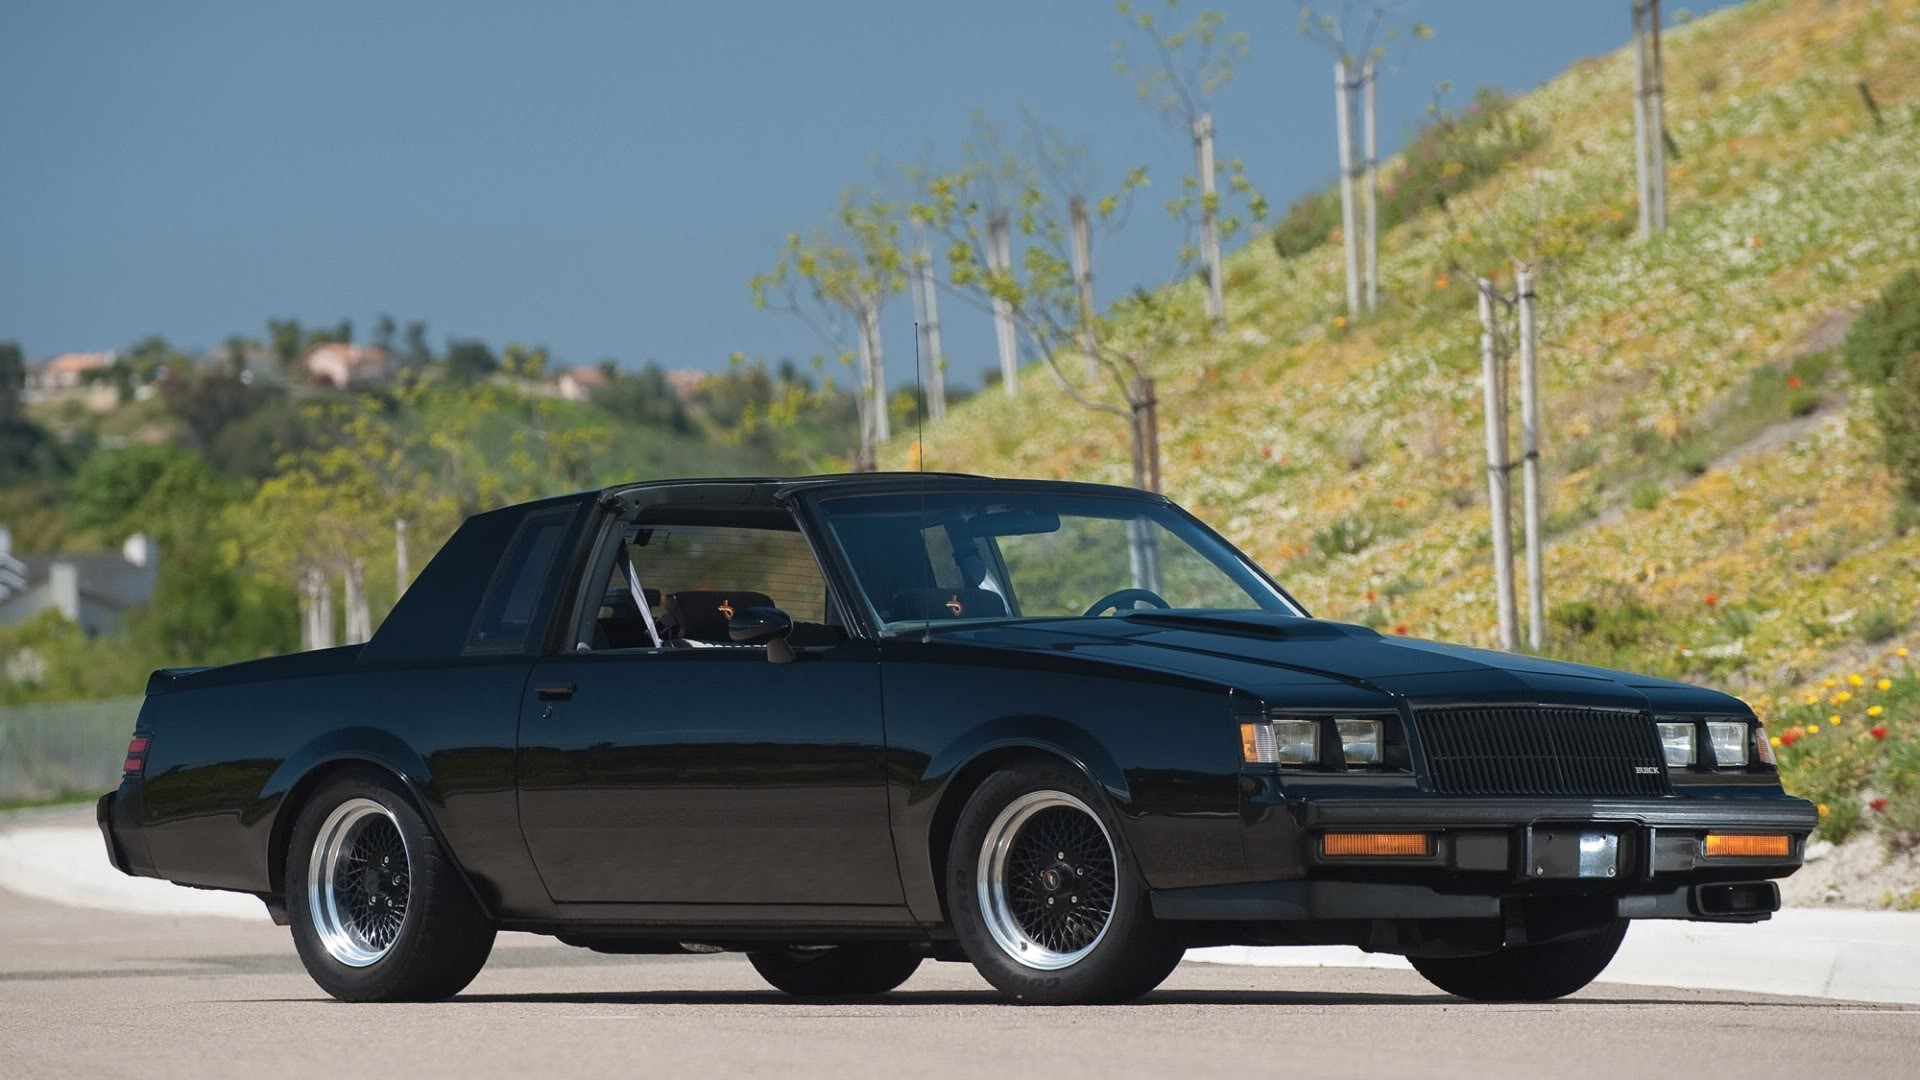 Buick Grand National >> Cars Buick black cars Buick GNX muscle car wallpaper   1920x1080   206235   WallpaperUP